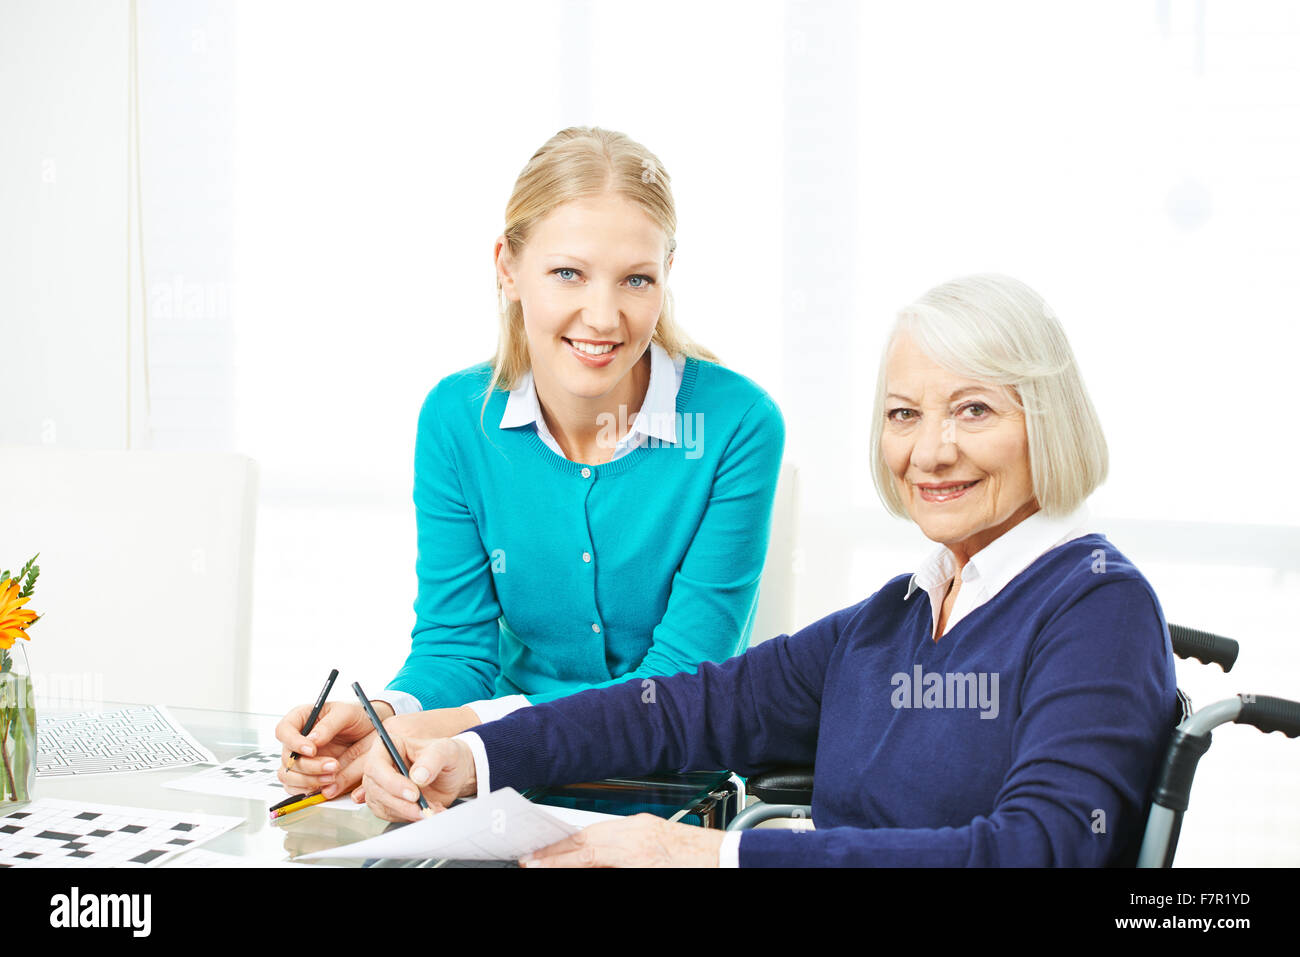 Family doing memory training together with mazes and sudoku puzzles - Stock Image